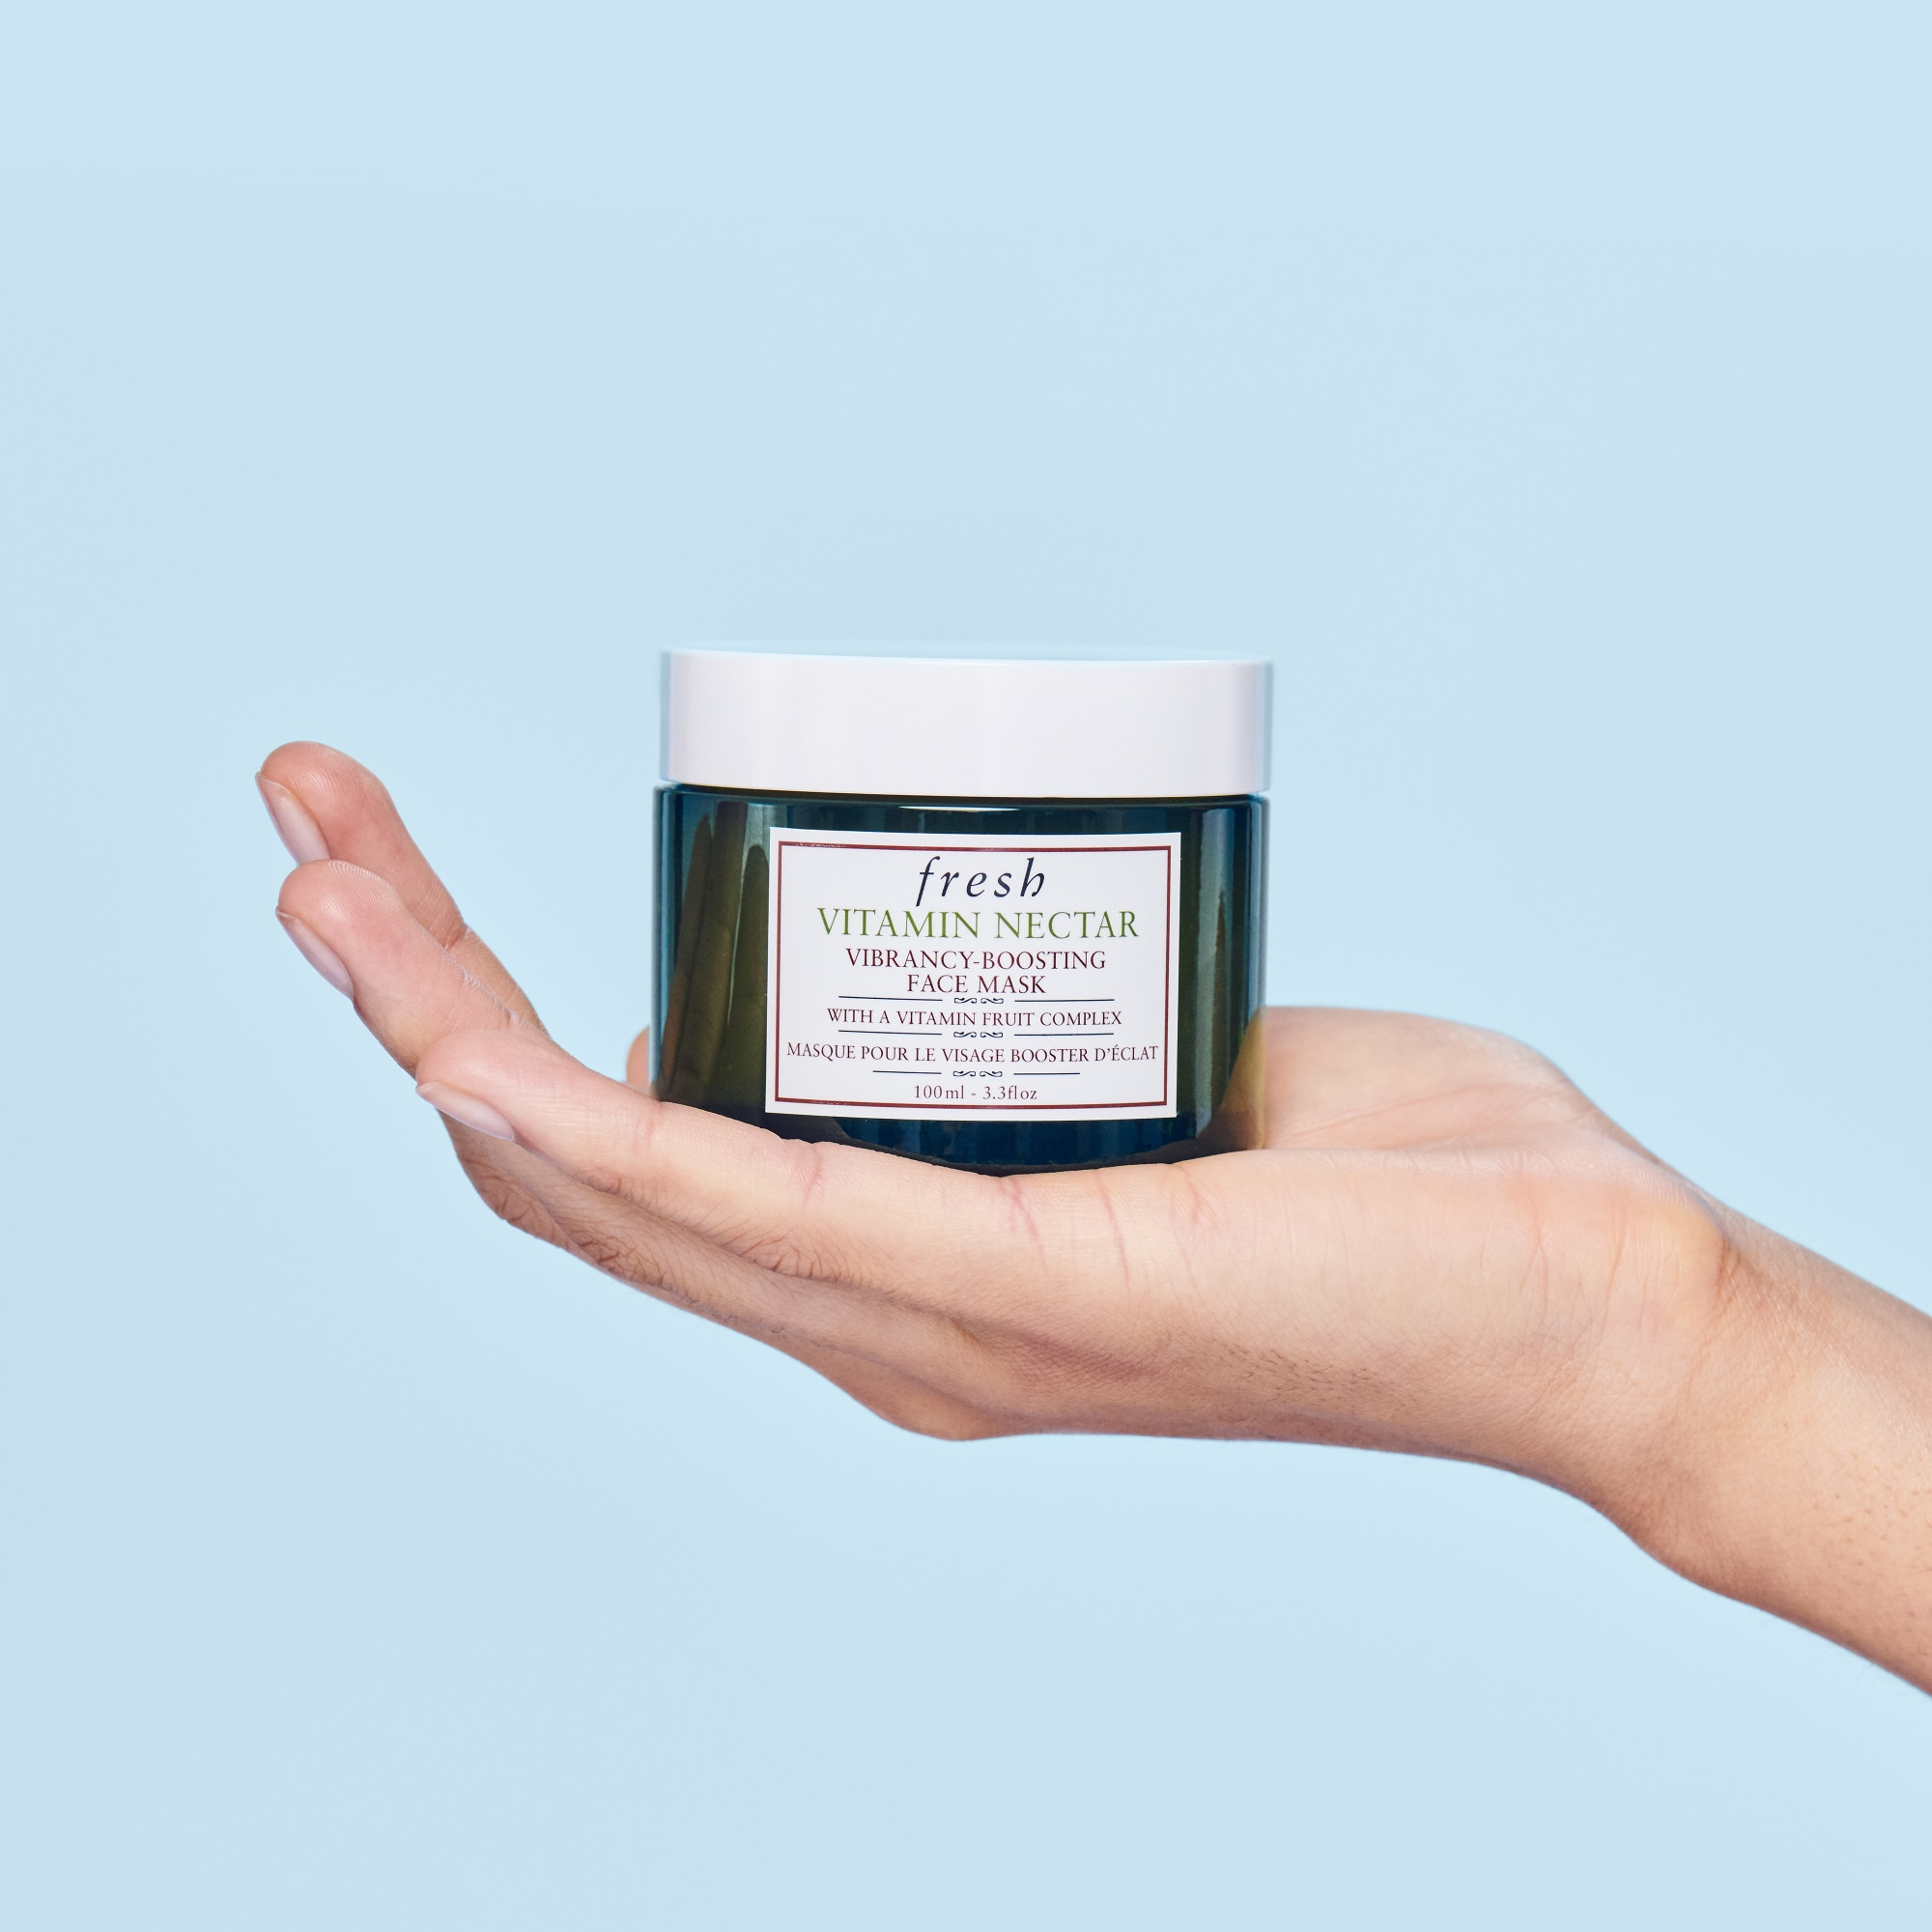 VITAMIN NECTAR VIBRANCY-BOOSTING FACE MASK